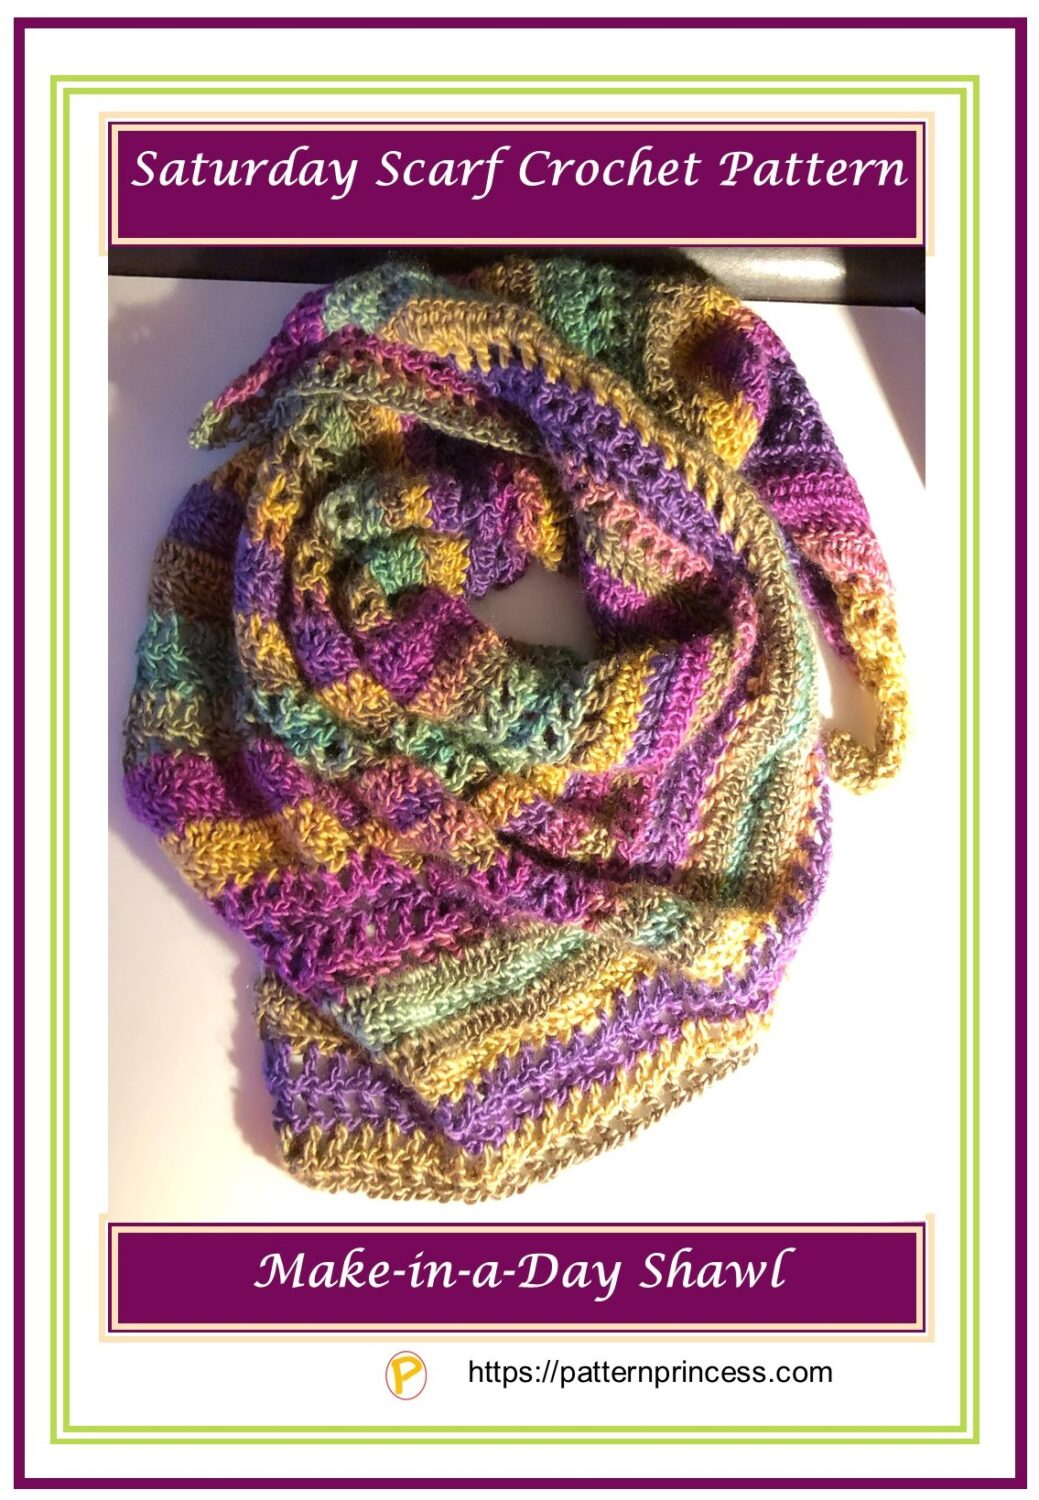 Saturday Scarf Crochet Pattern